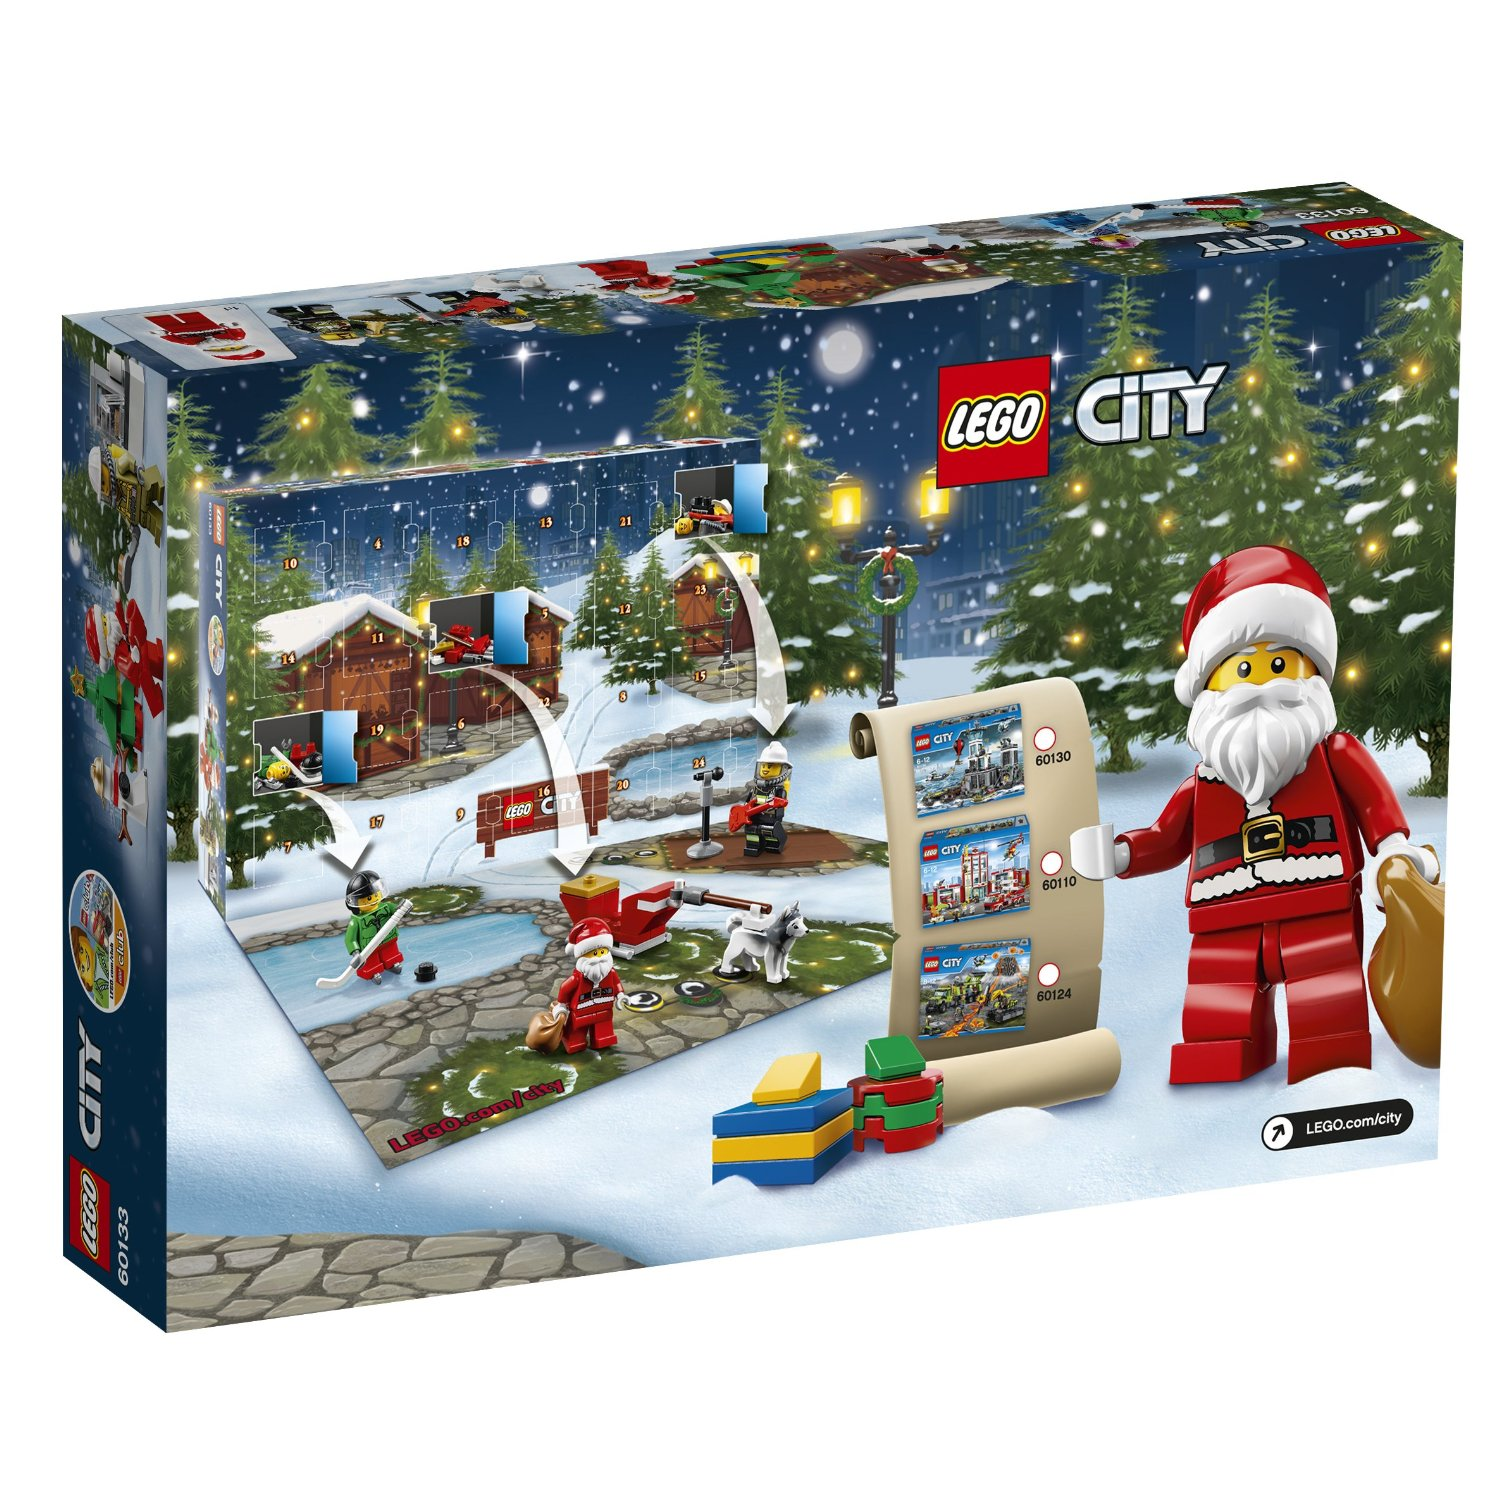 Lego City 60133 Adventskalender 2016 EAN 5702015594943